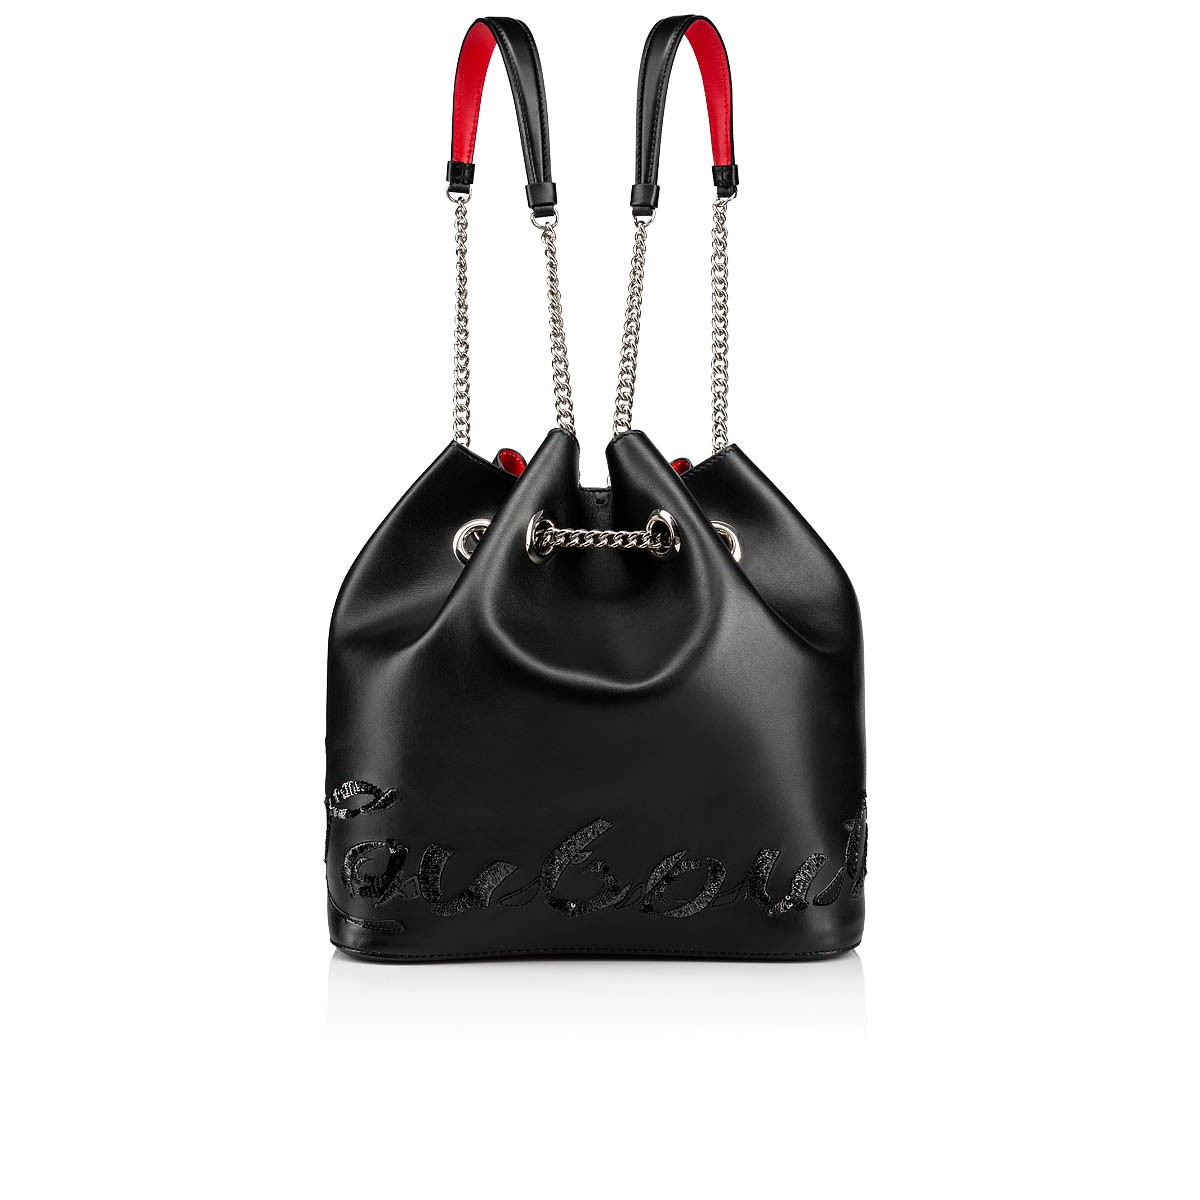 Bags - Marie Jane Classic Leather - Christian Louboutin